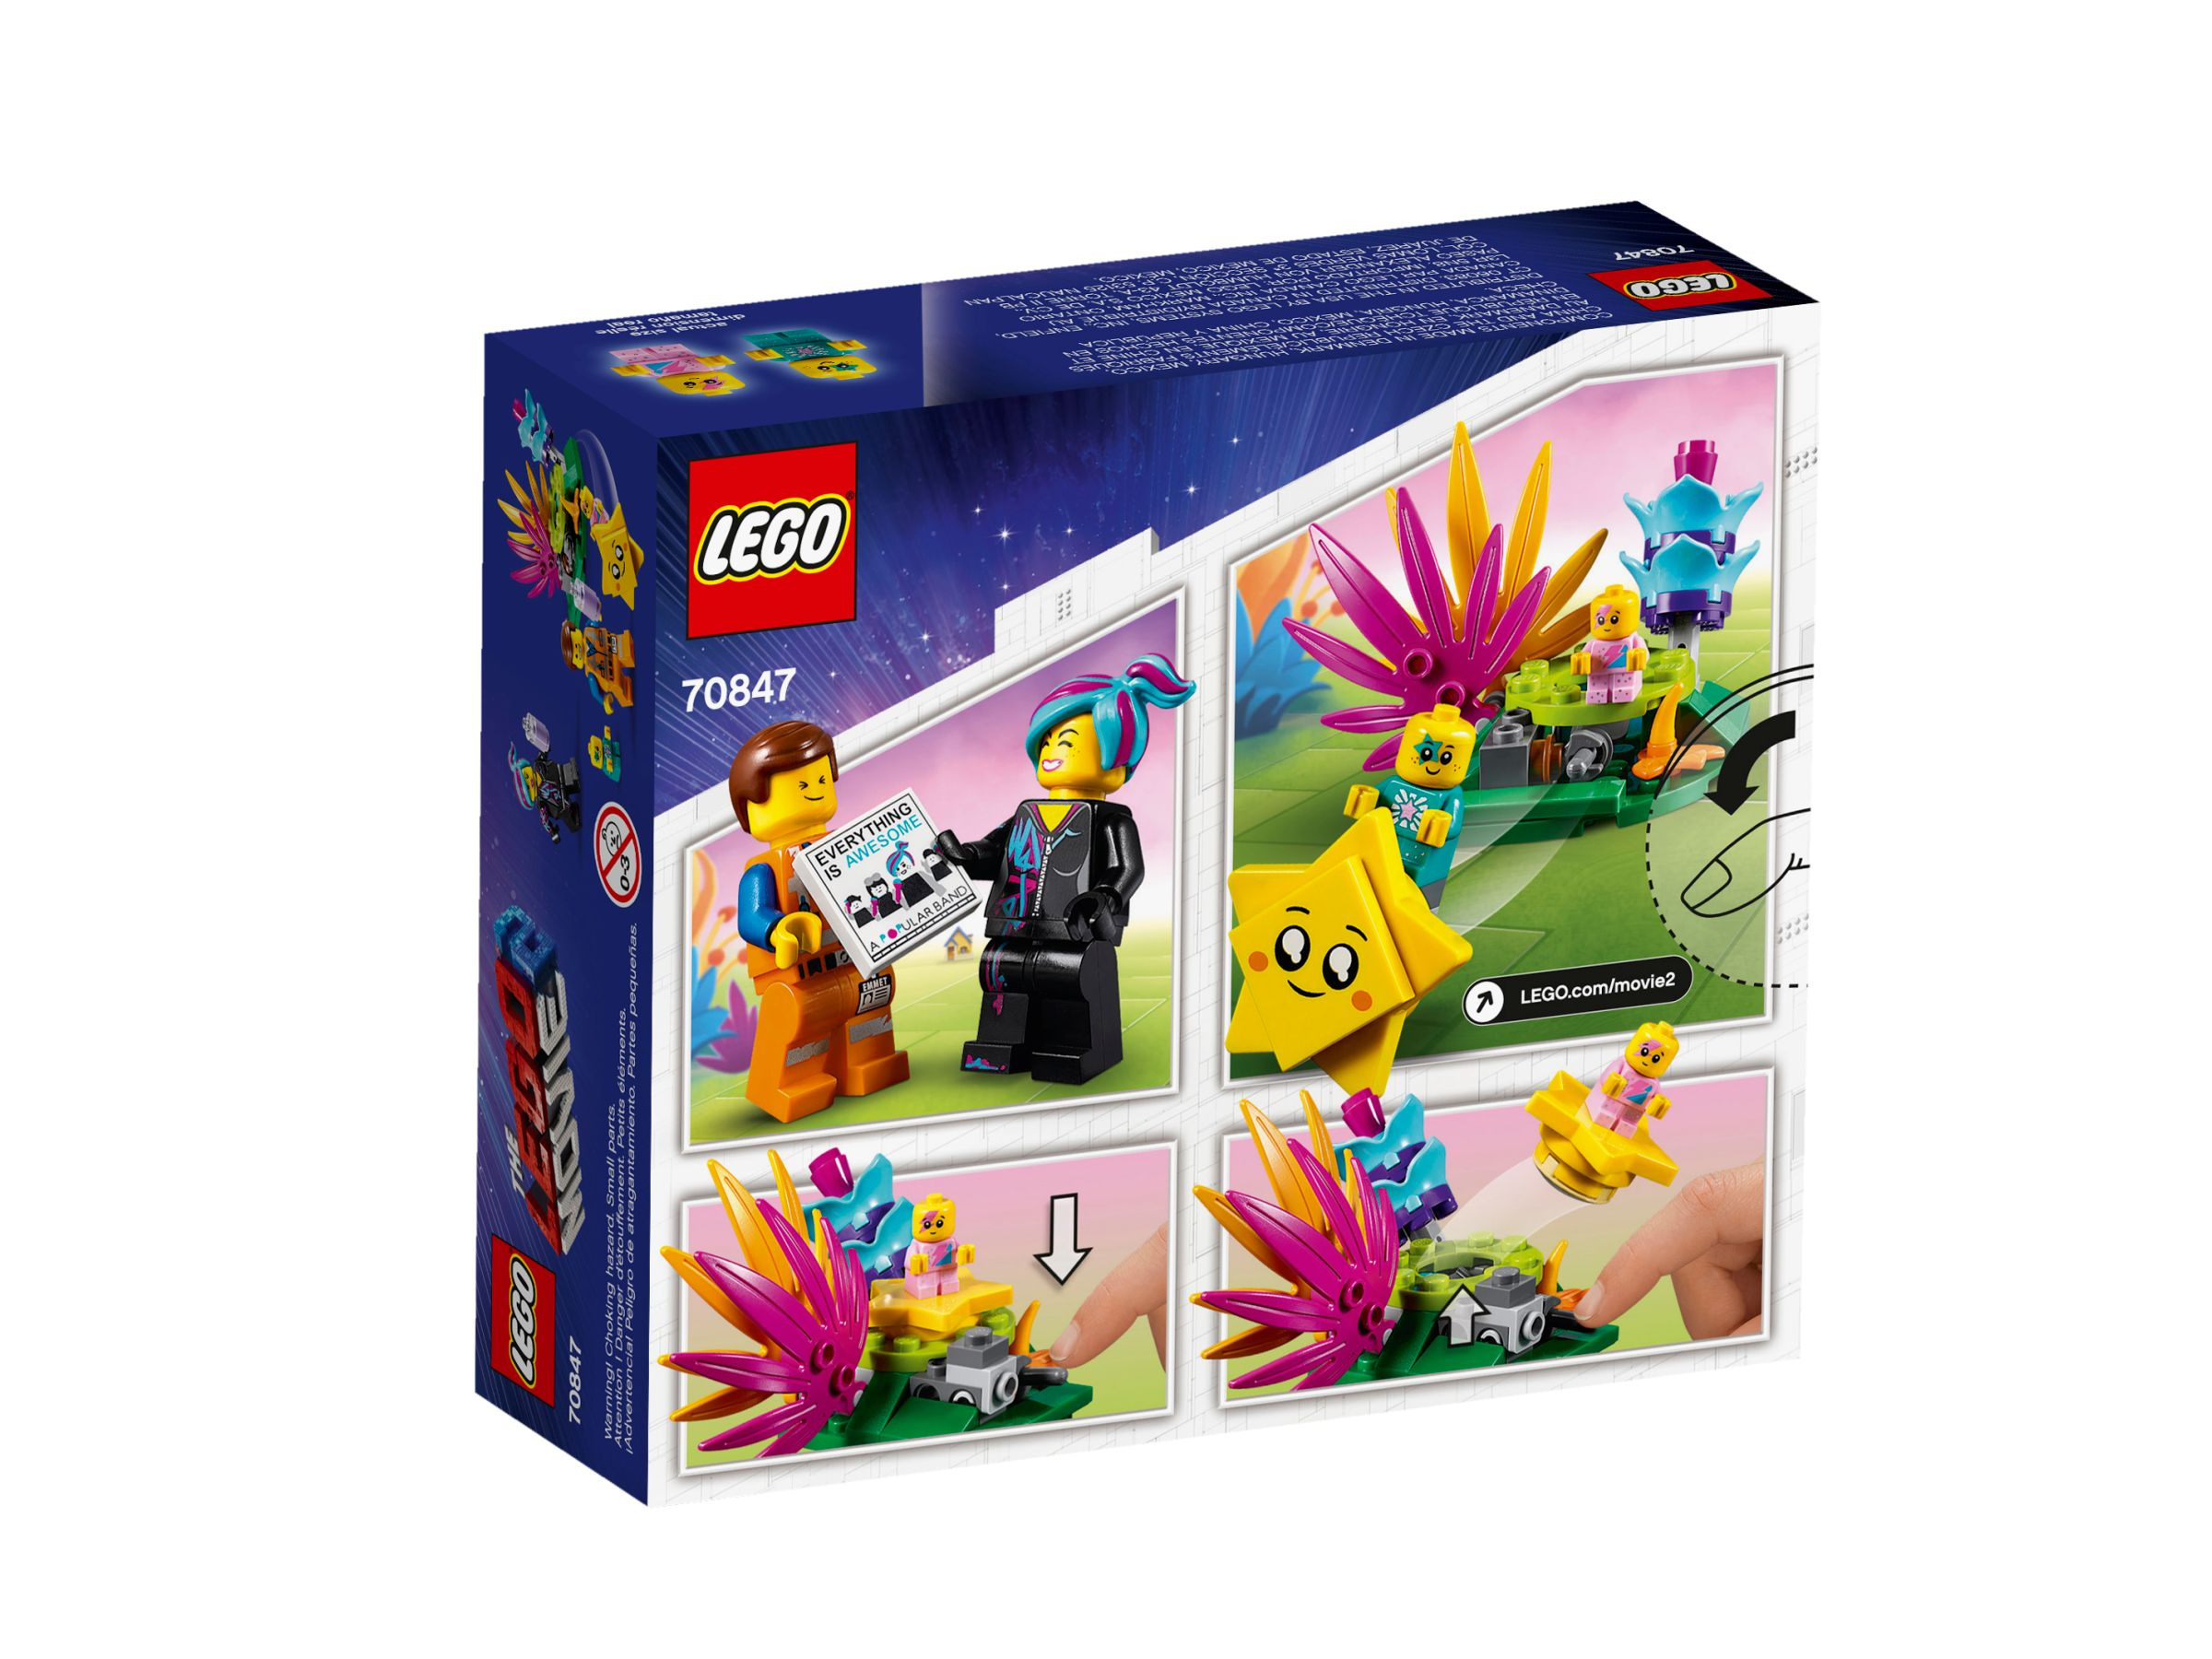 LEGO The Lego Movie 2 70847 Guten Morgen, Glitzerbabys! LEGO_70847_alt4.jpg